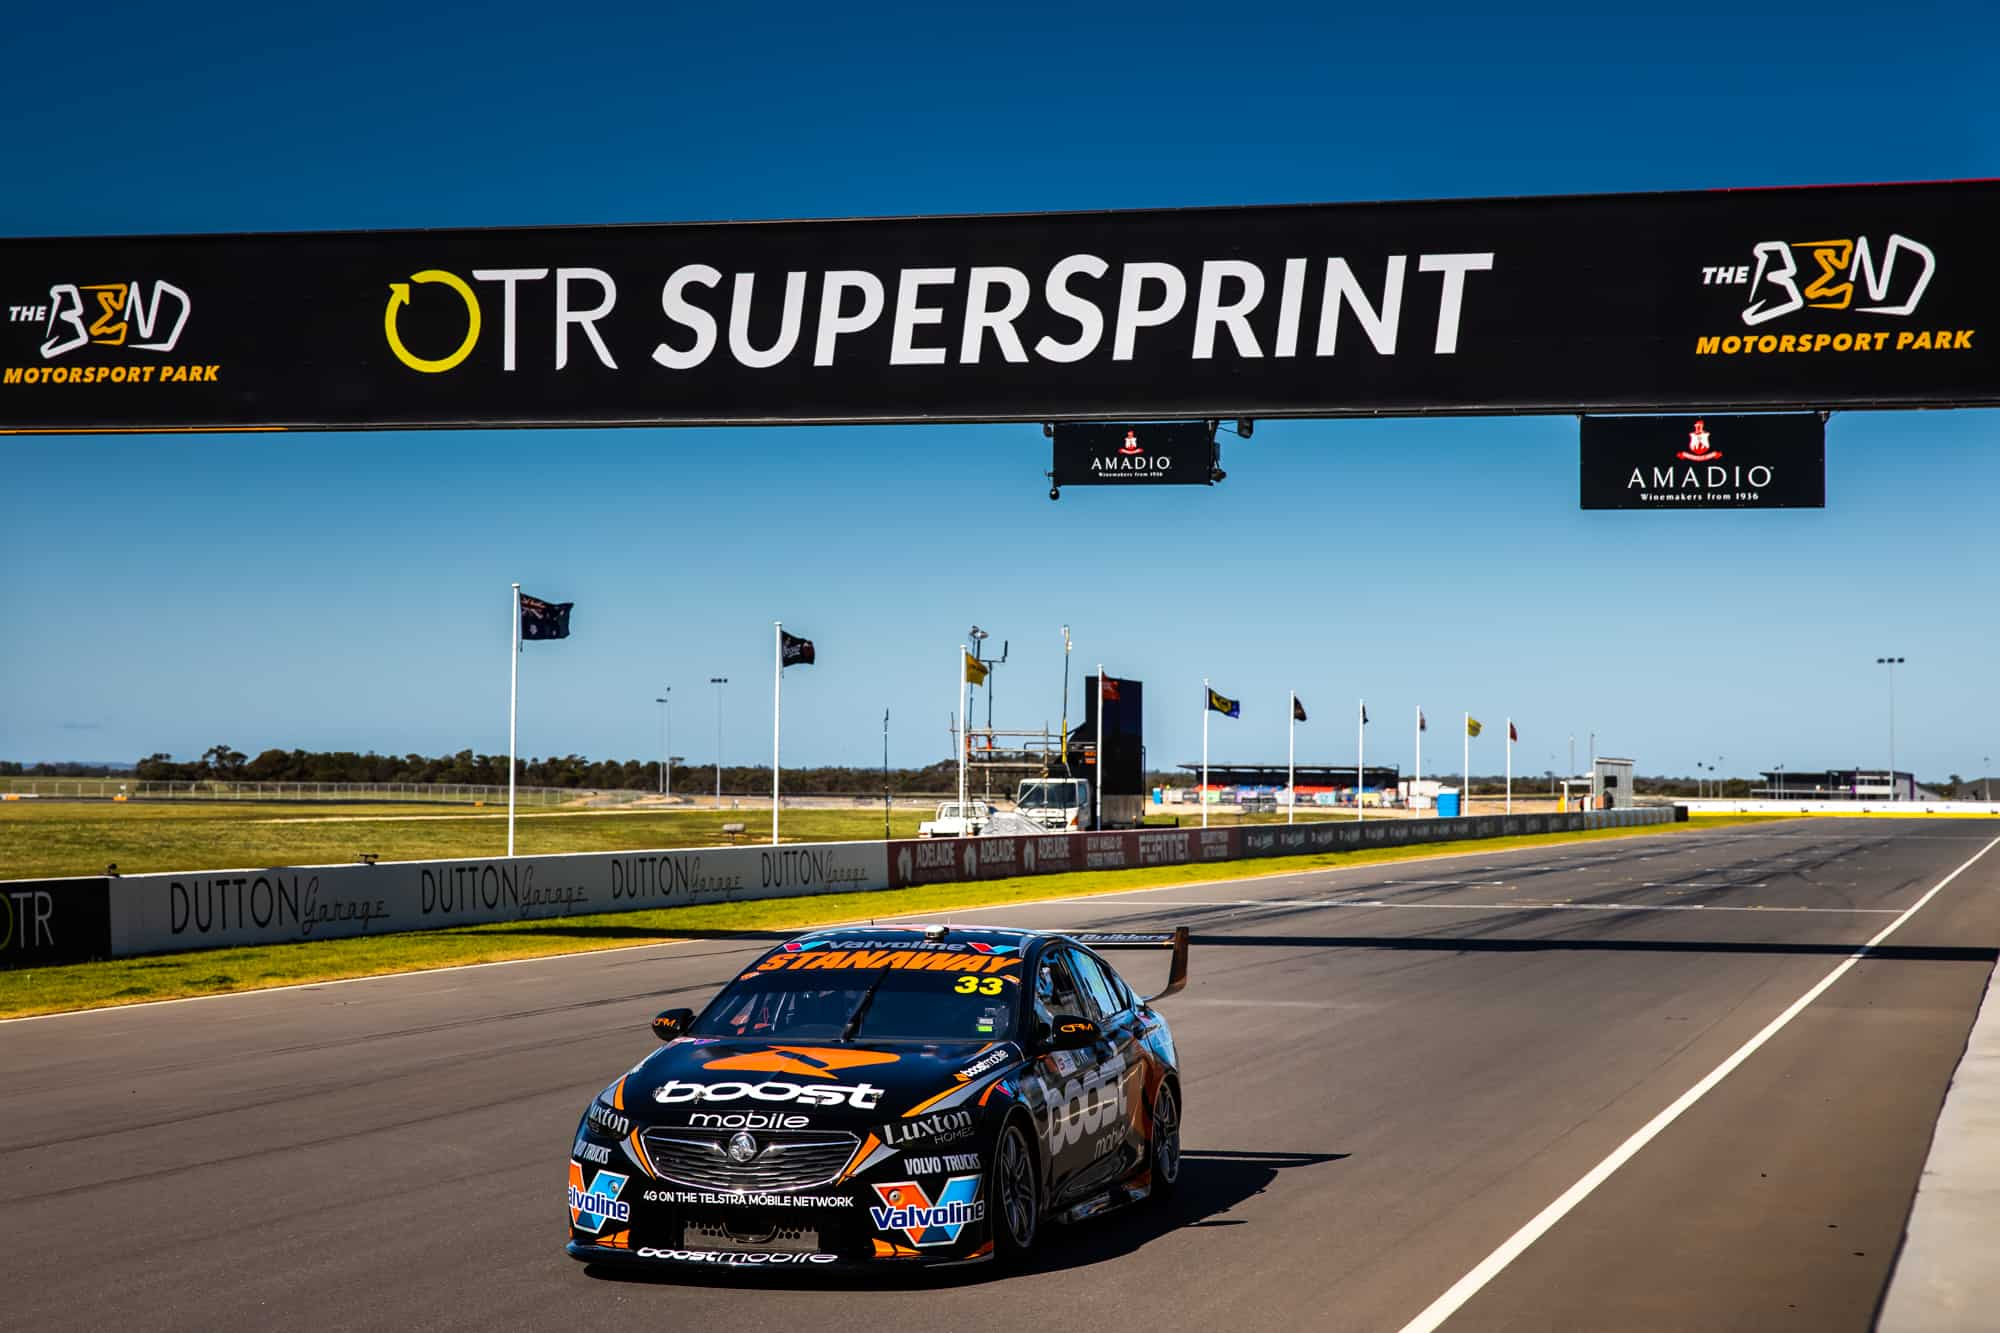 OTR SuperSprint – The Bend Motorsport Park